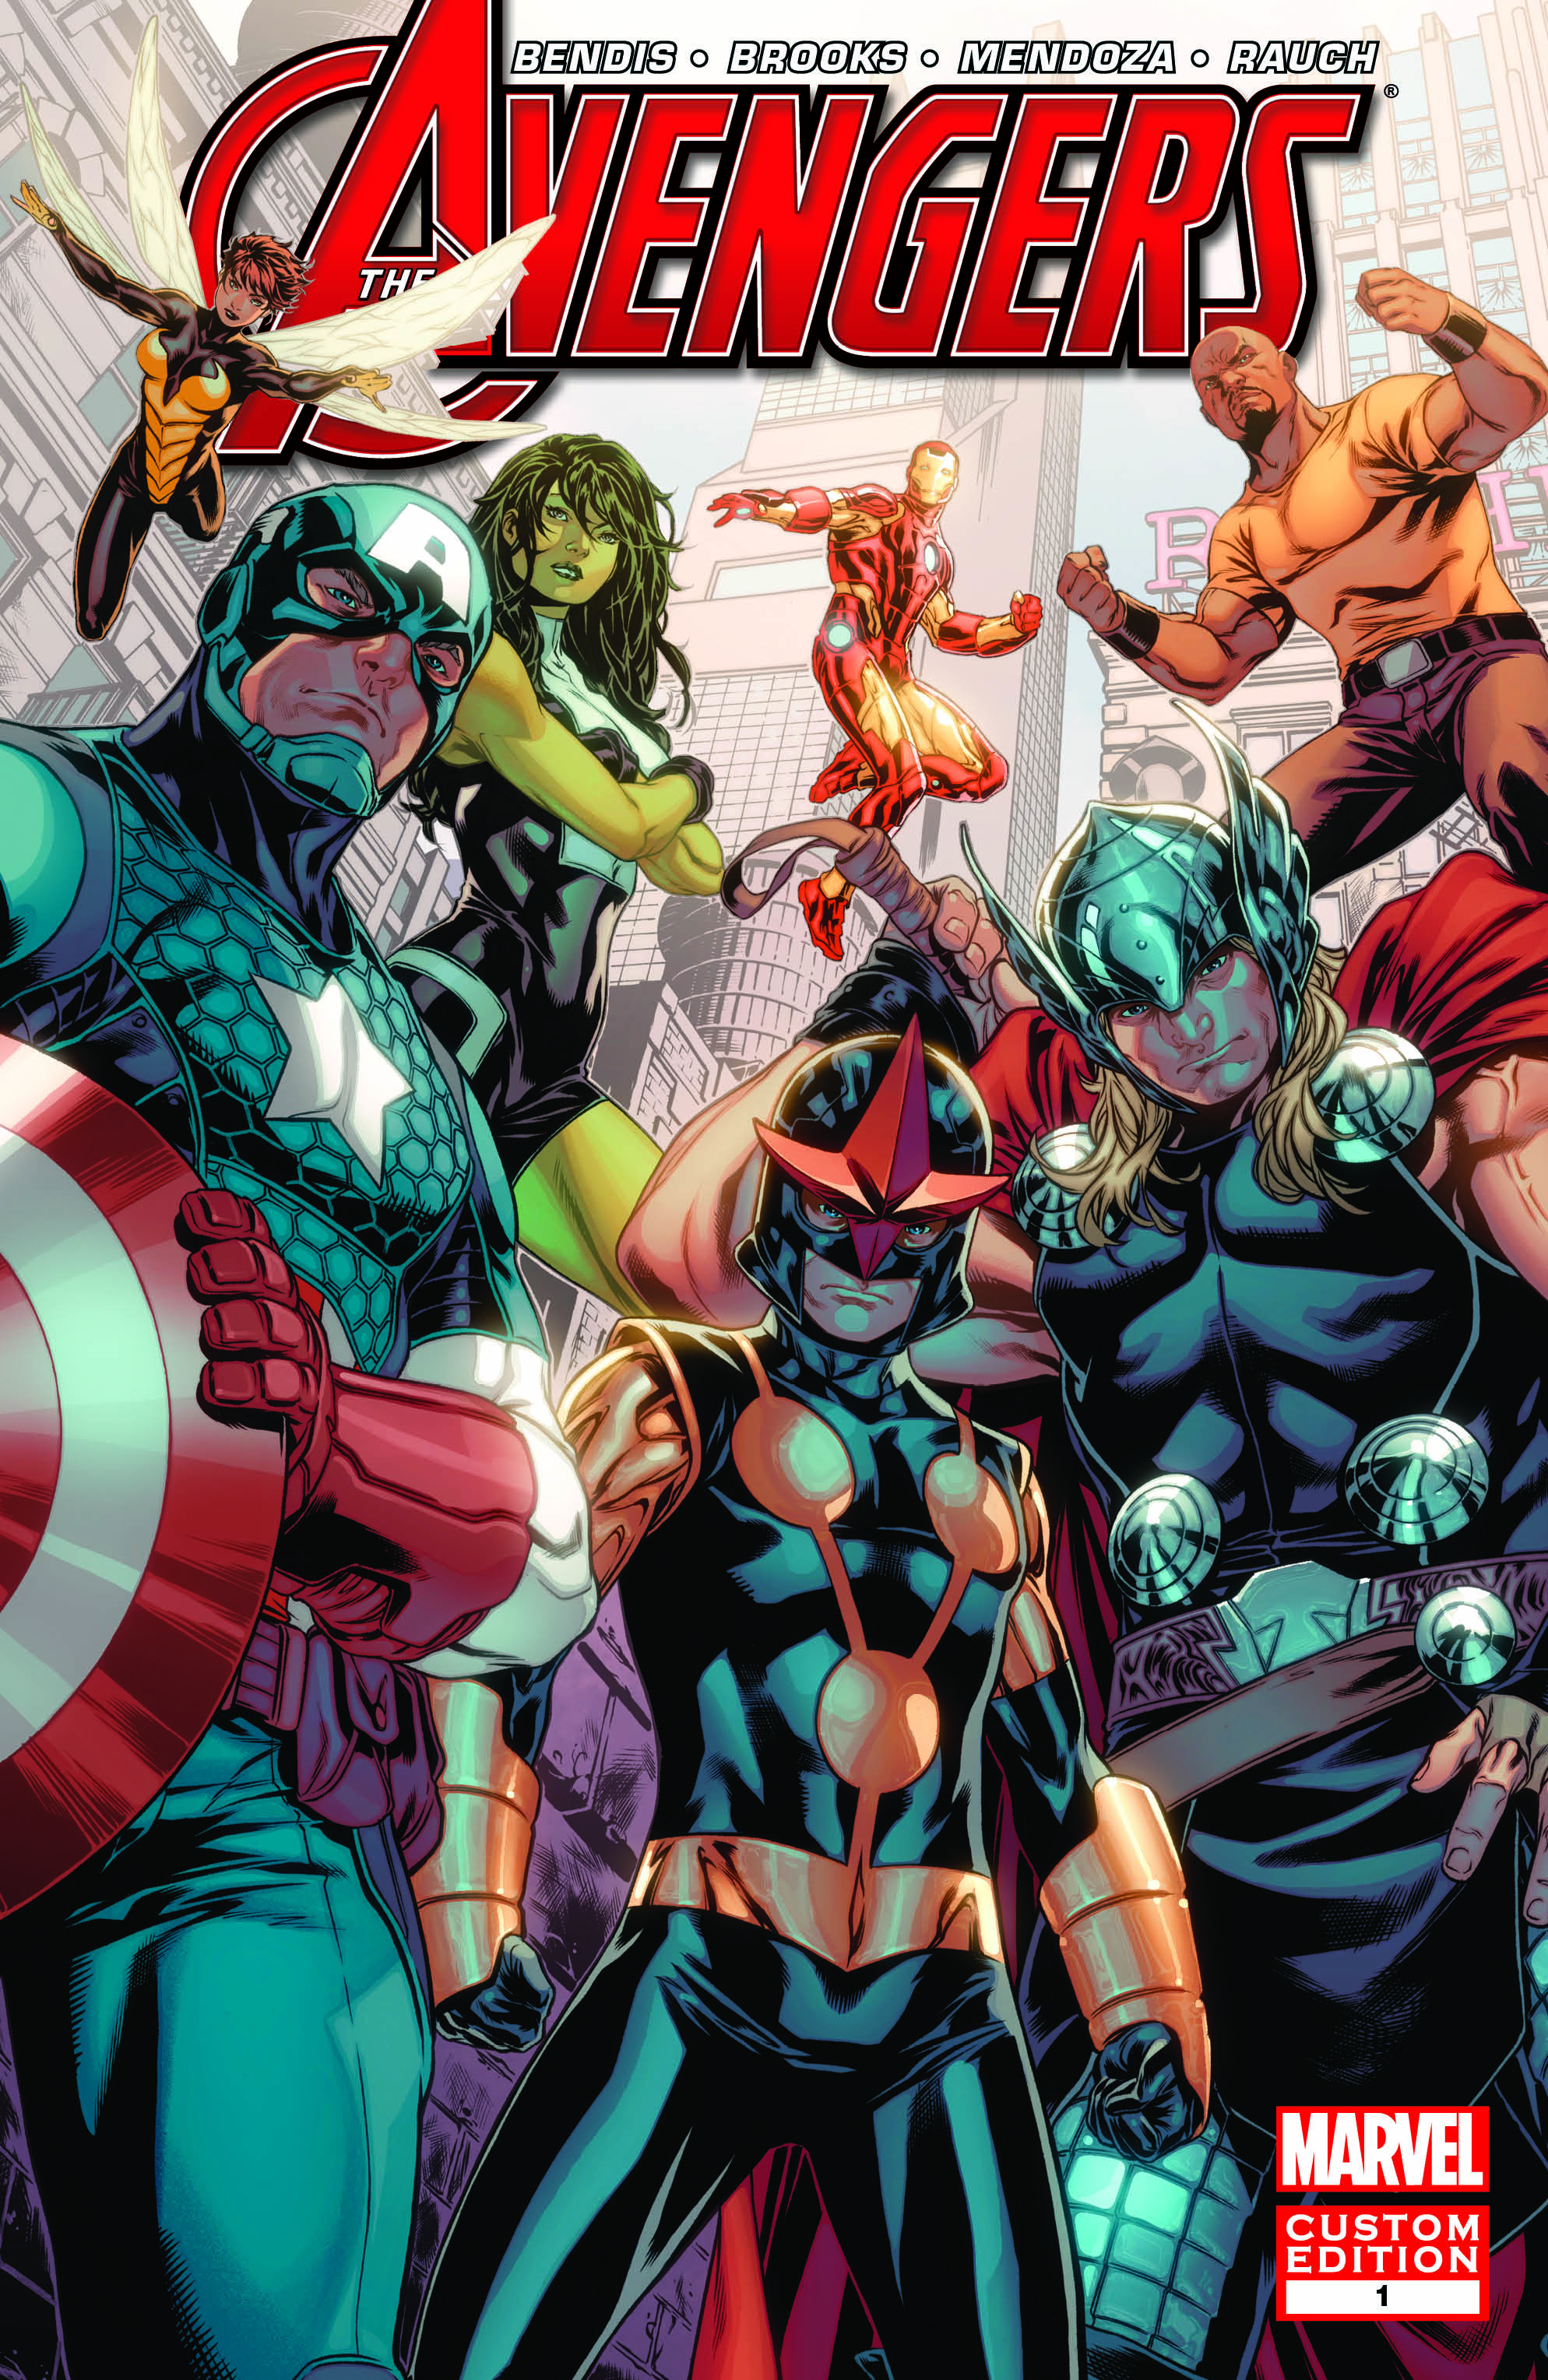 Avengers: Heroes Welcome (2013) #1